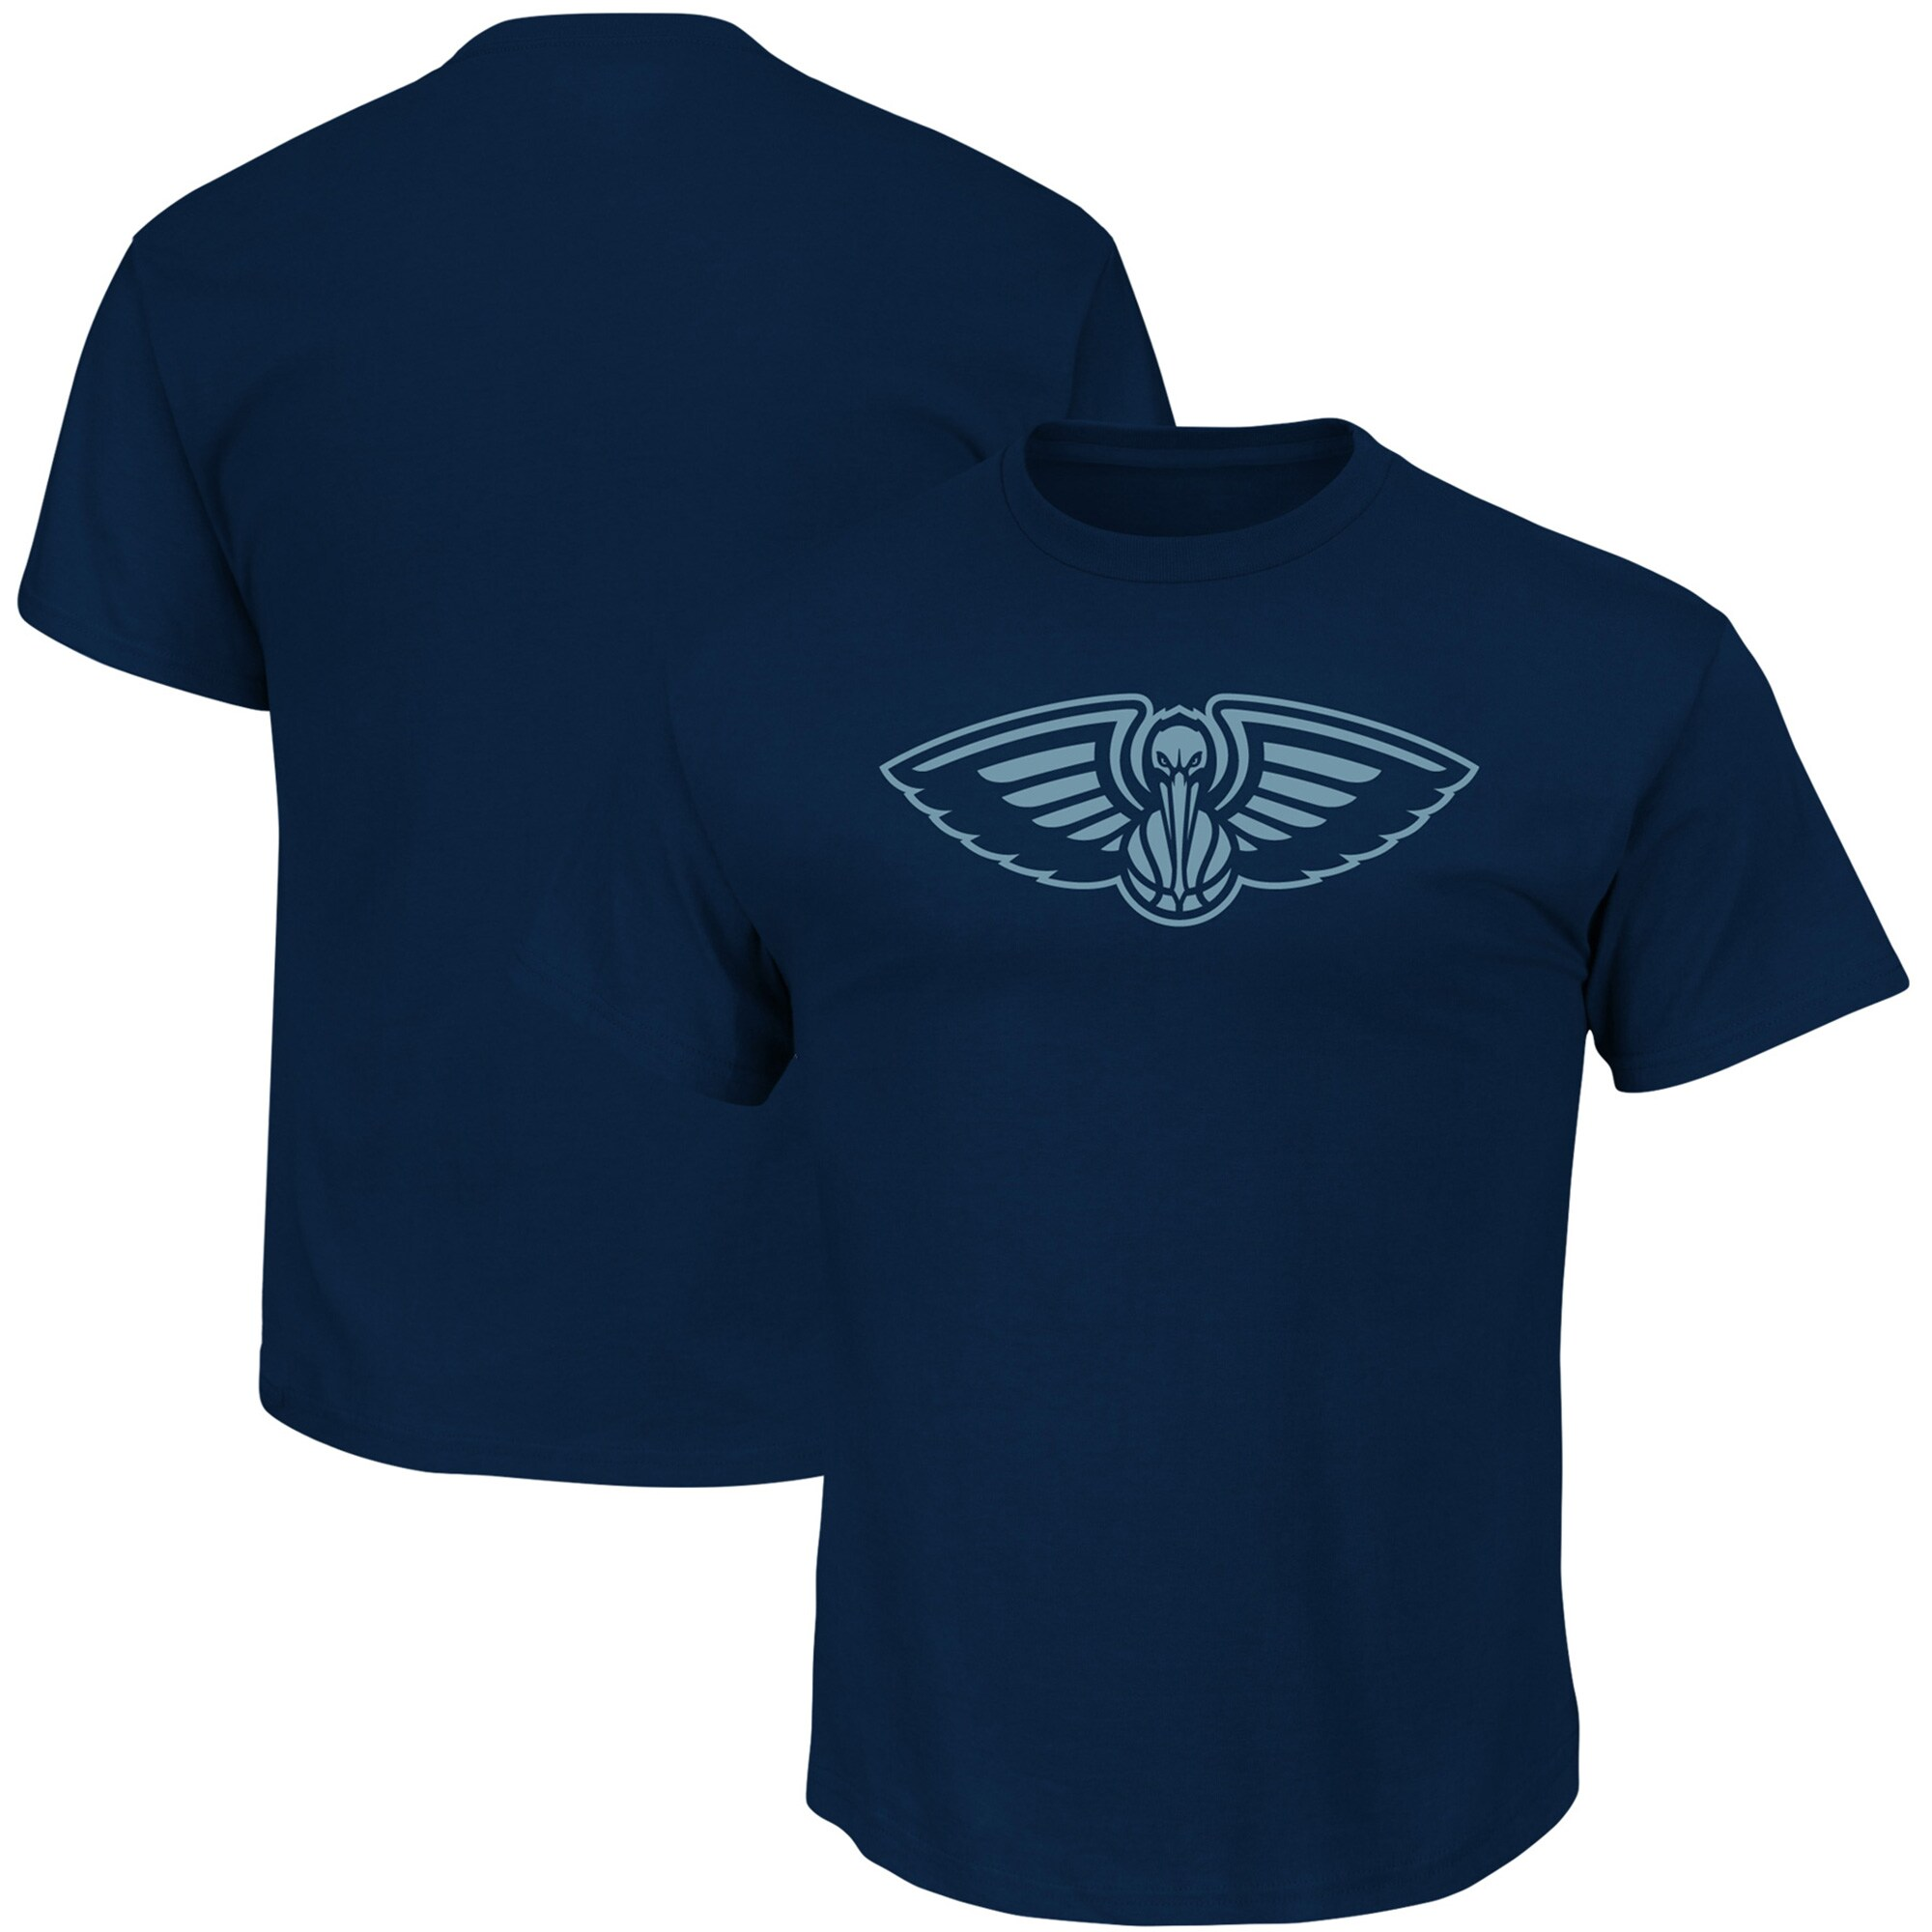 New Orleans Pelicans Majestic Reflective Tek Patch T-Shirt - Navy